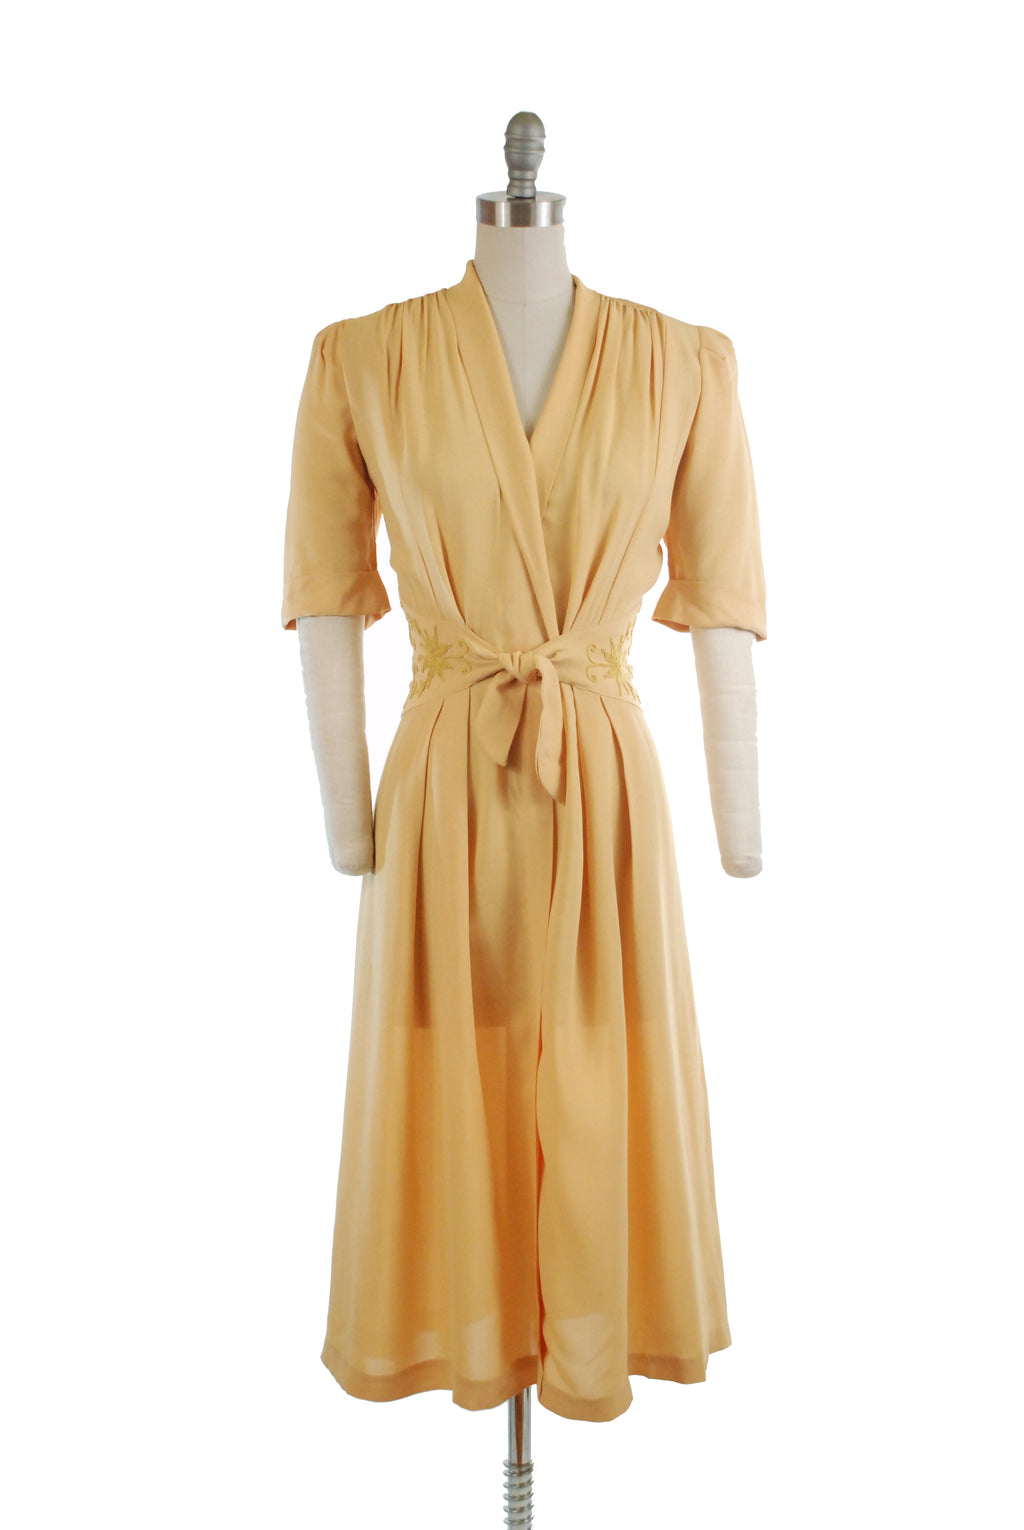 Fantastic 1940s Butter Yellow Dream Dress with Tie-Front Soutache Midwaist